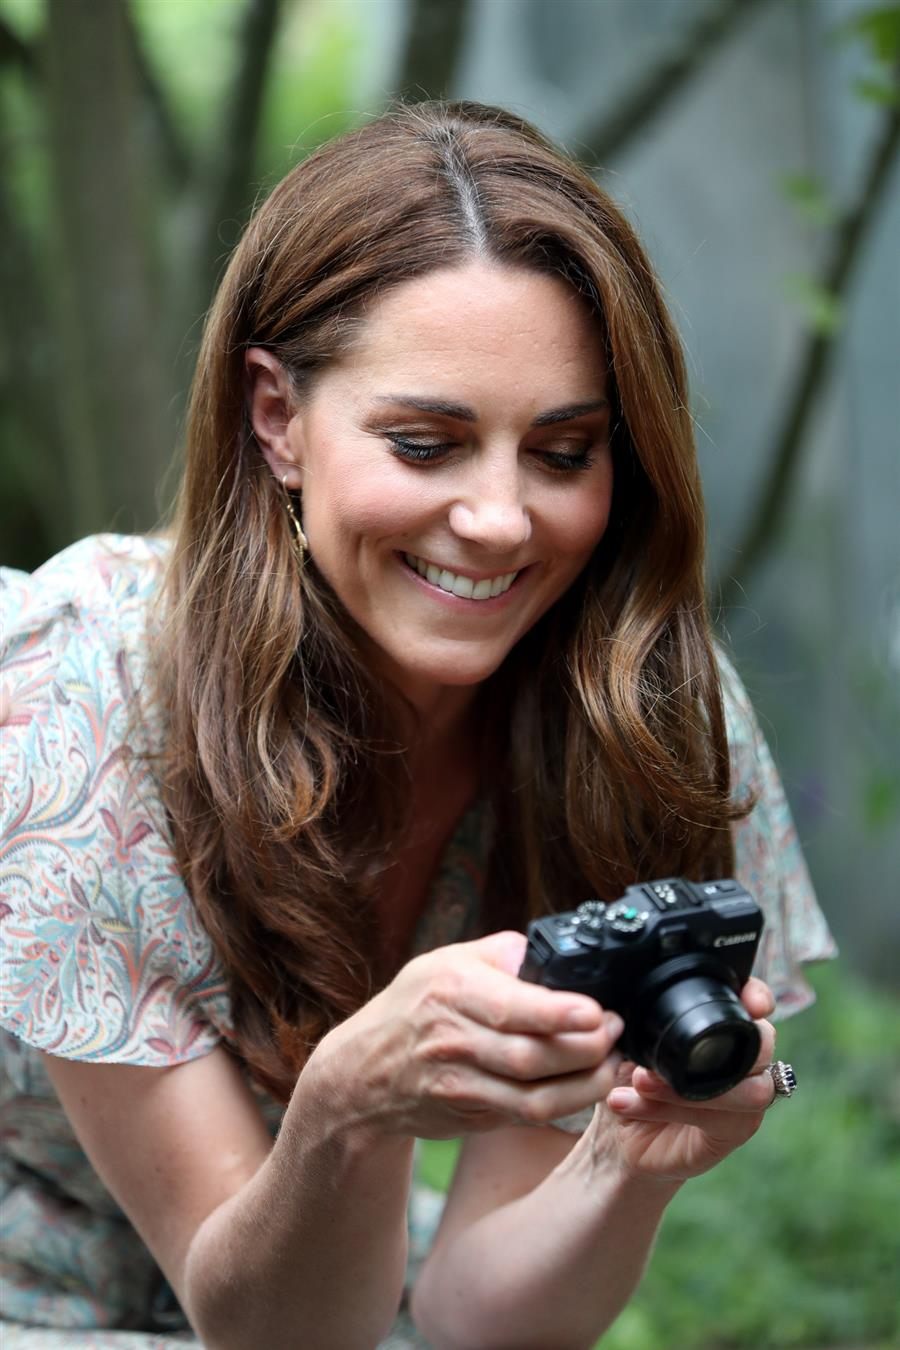 Kate Middleton con la cámara de fotos